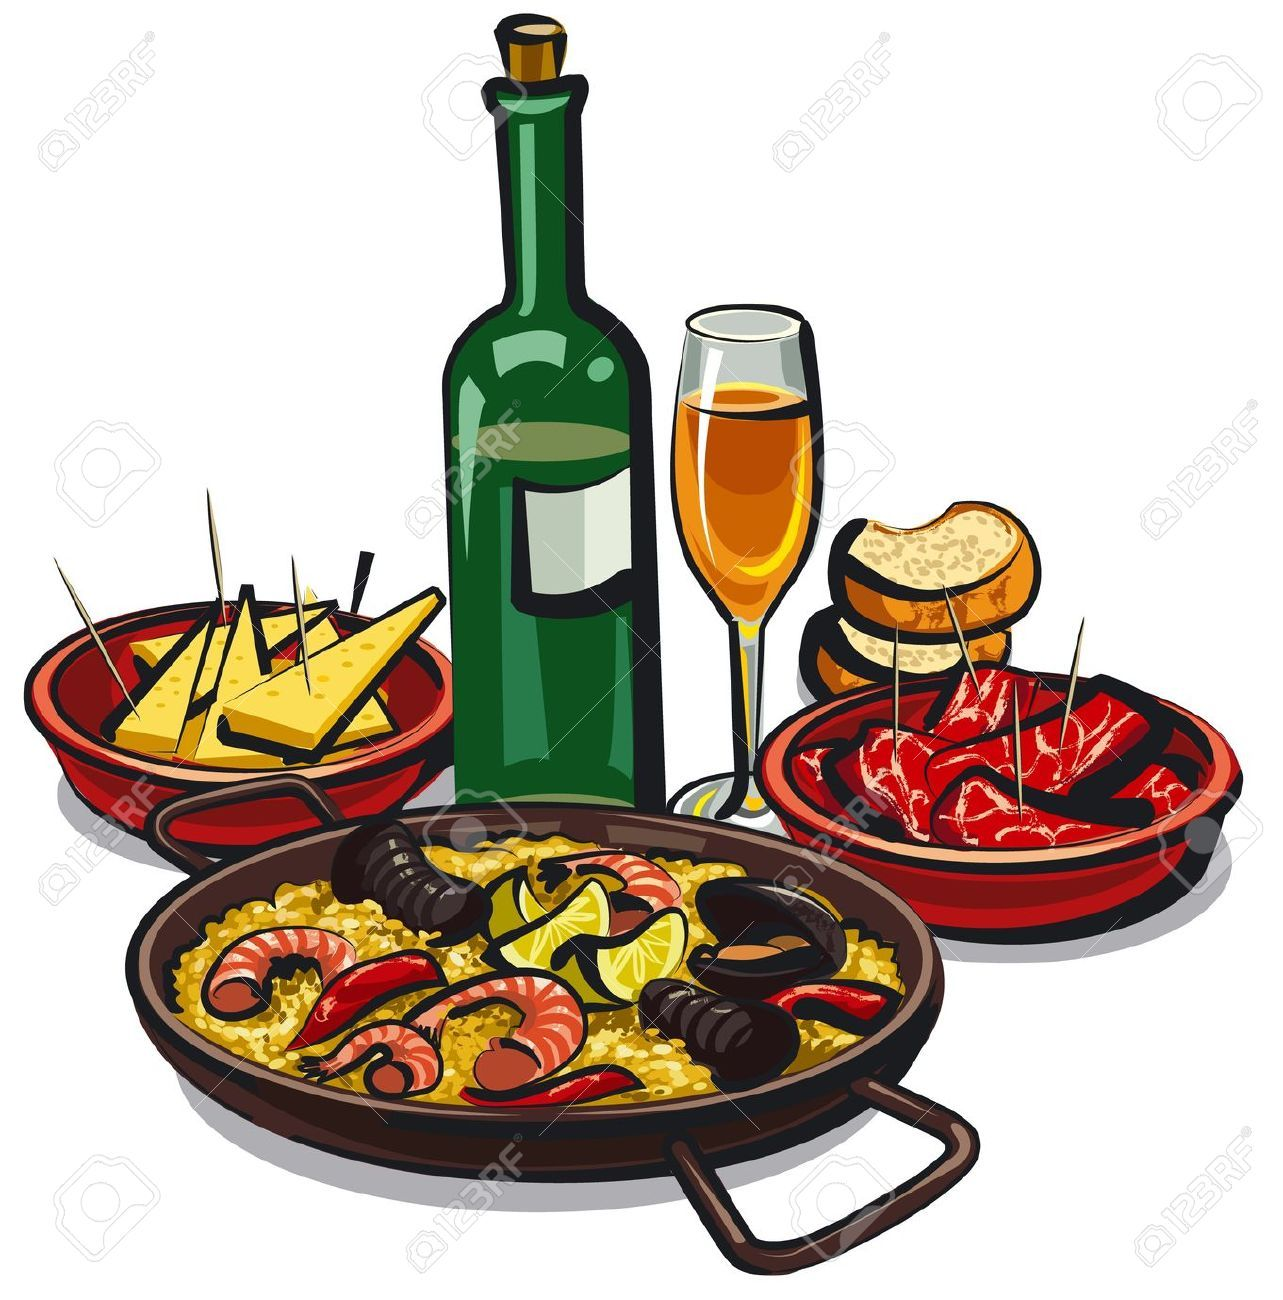 Bar and grill food clipart clipart Restaurant food clipart 3 » Clipart Portal clipart